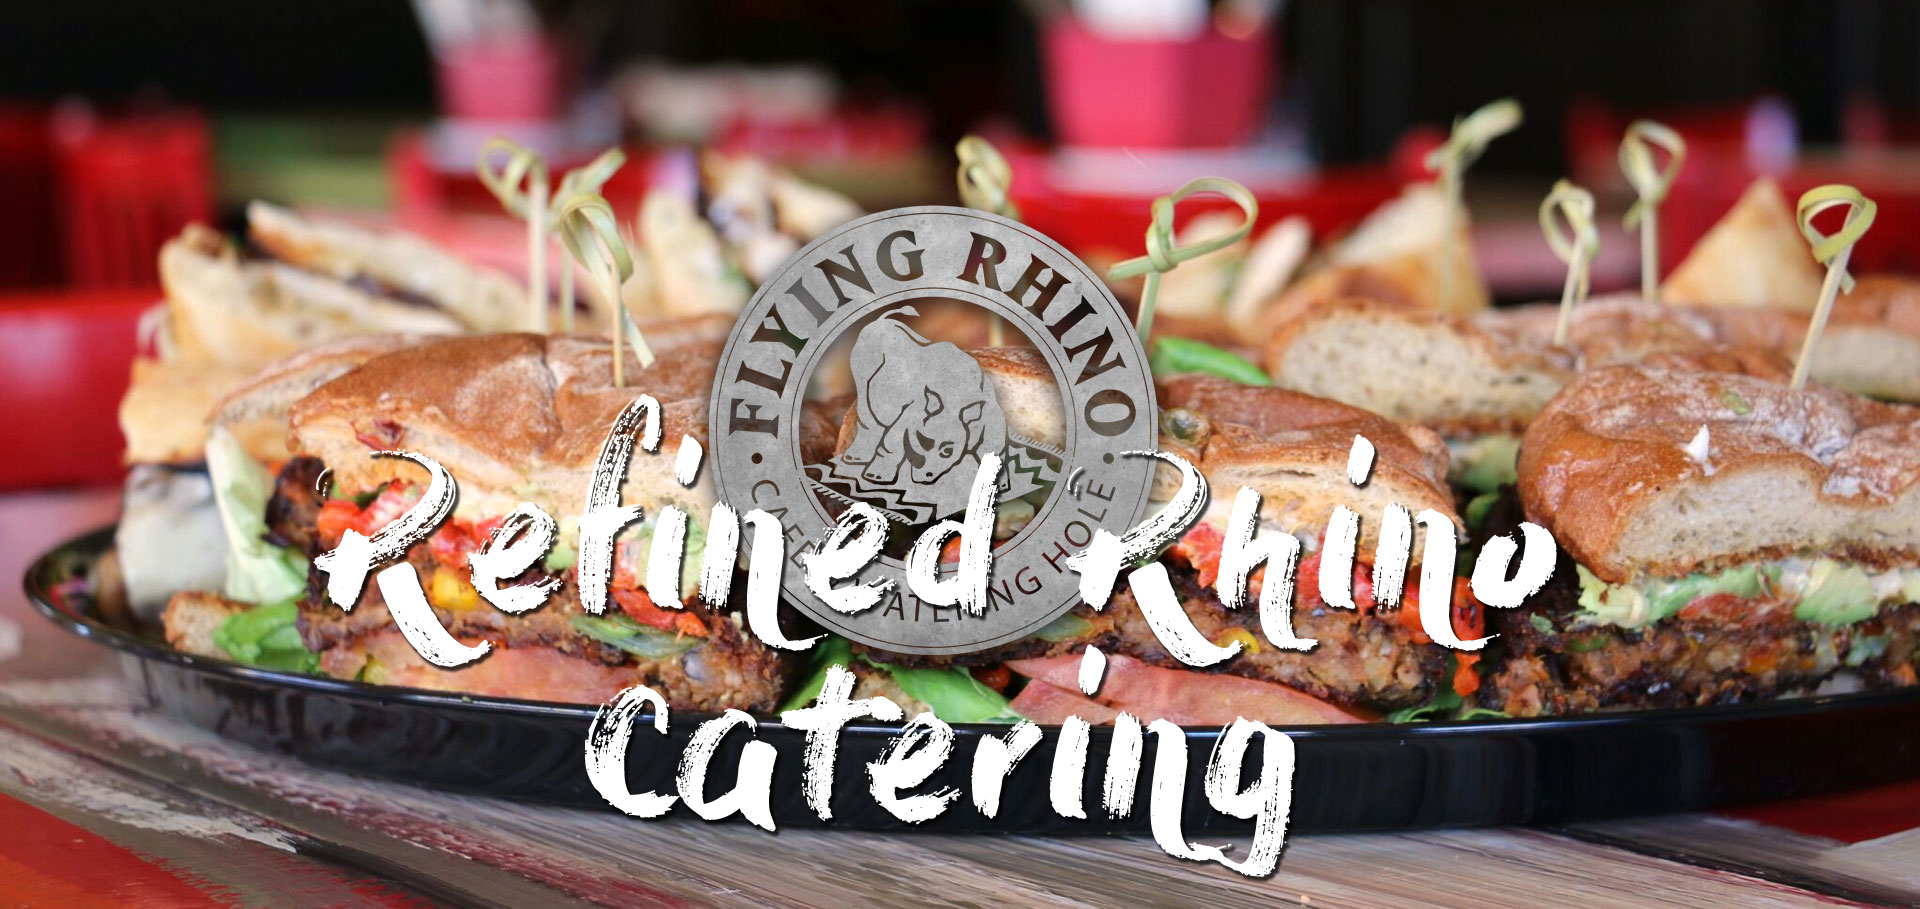 Refined Rhino Catering